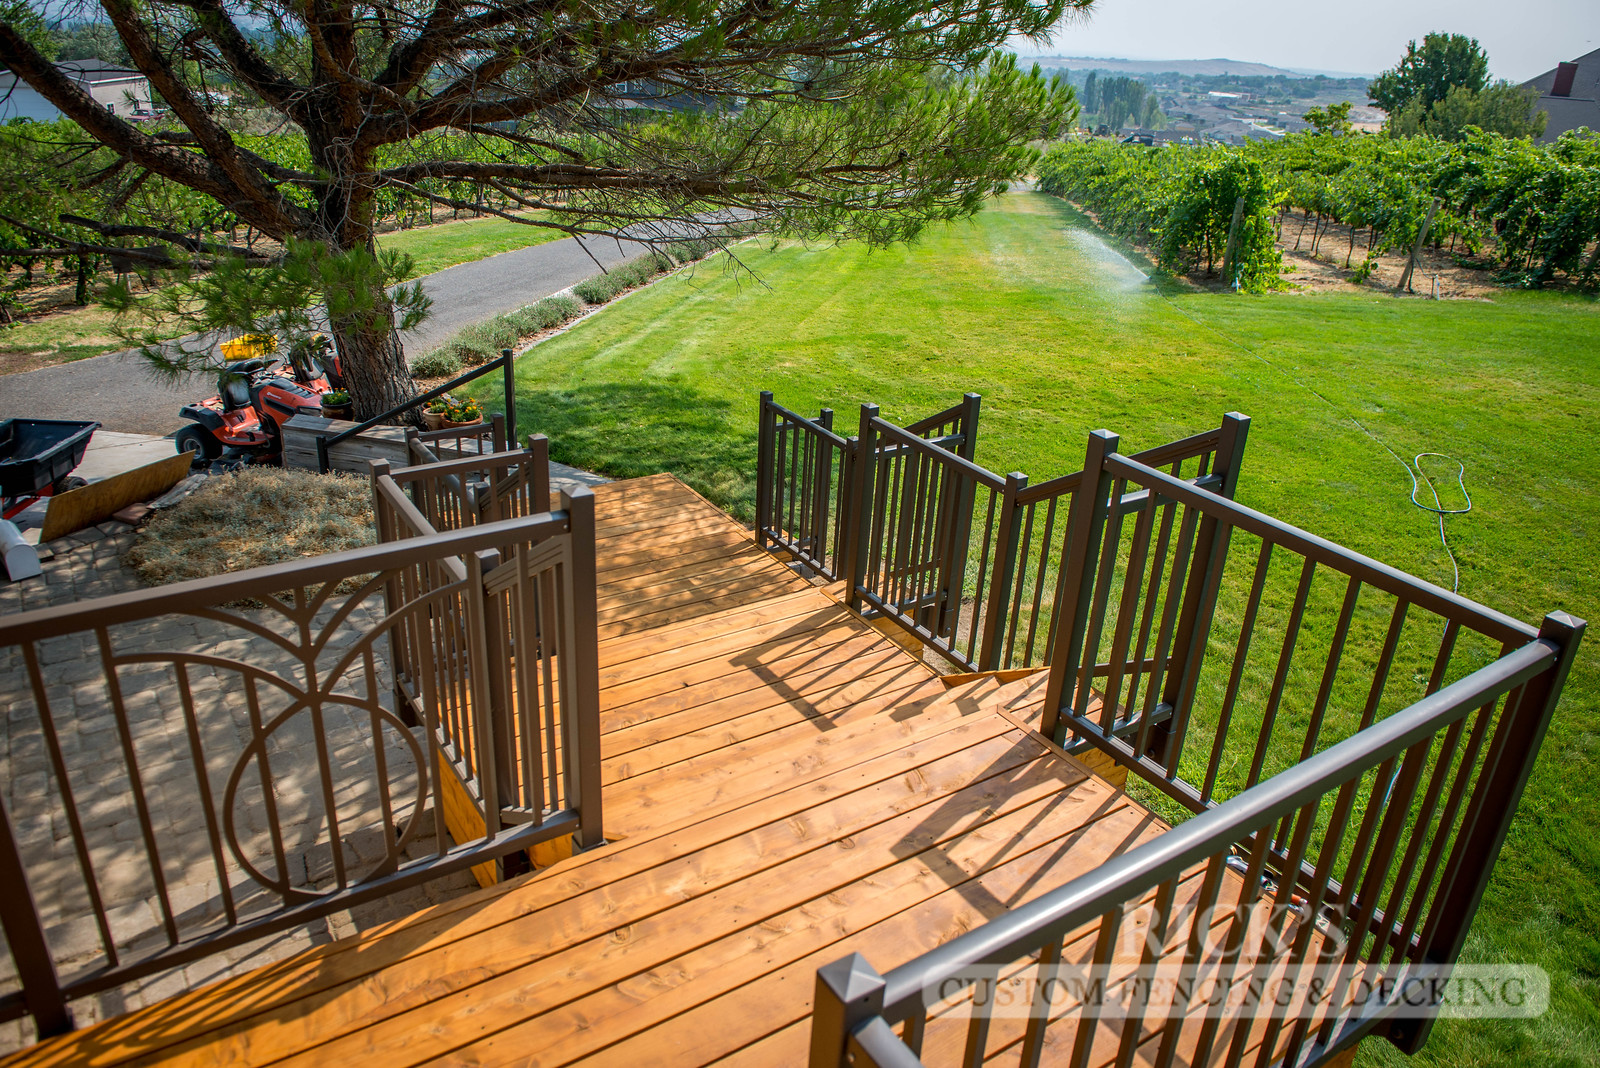 1011 - Stained Port Orford Cedar Decking with Aluminum Handrail